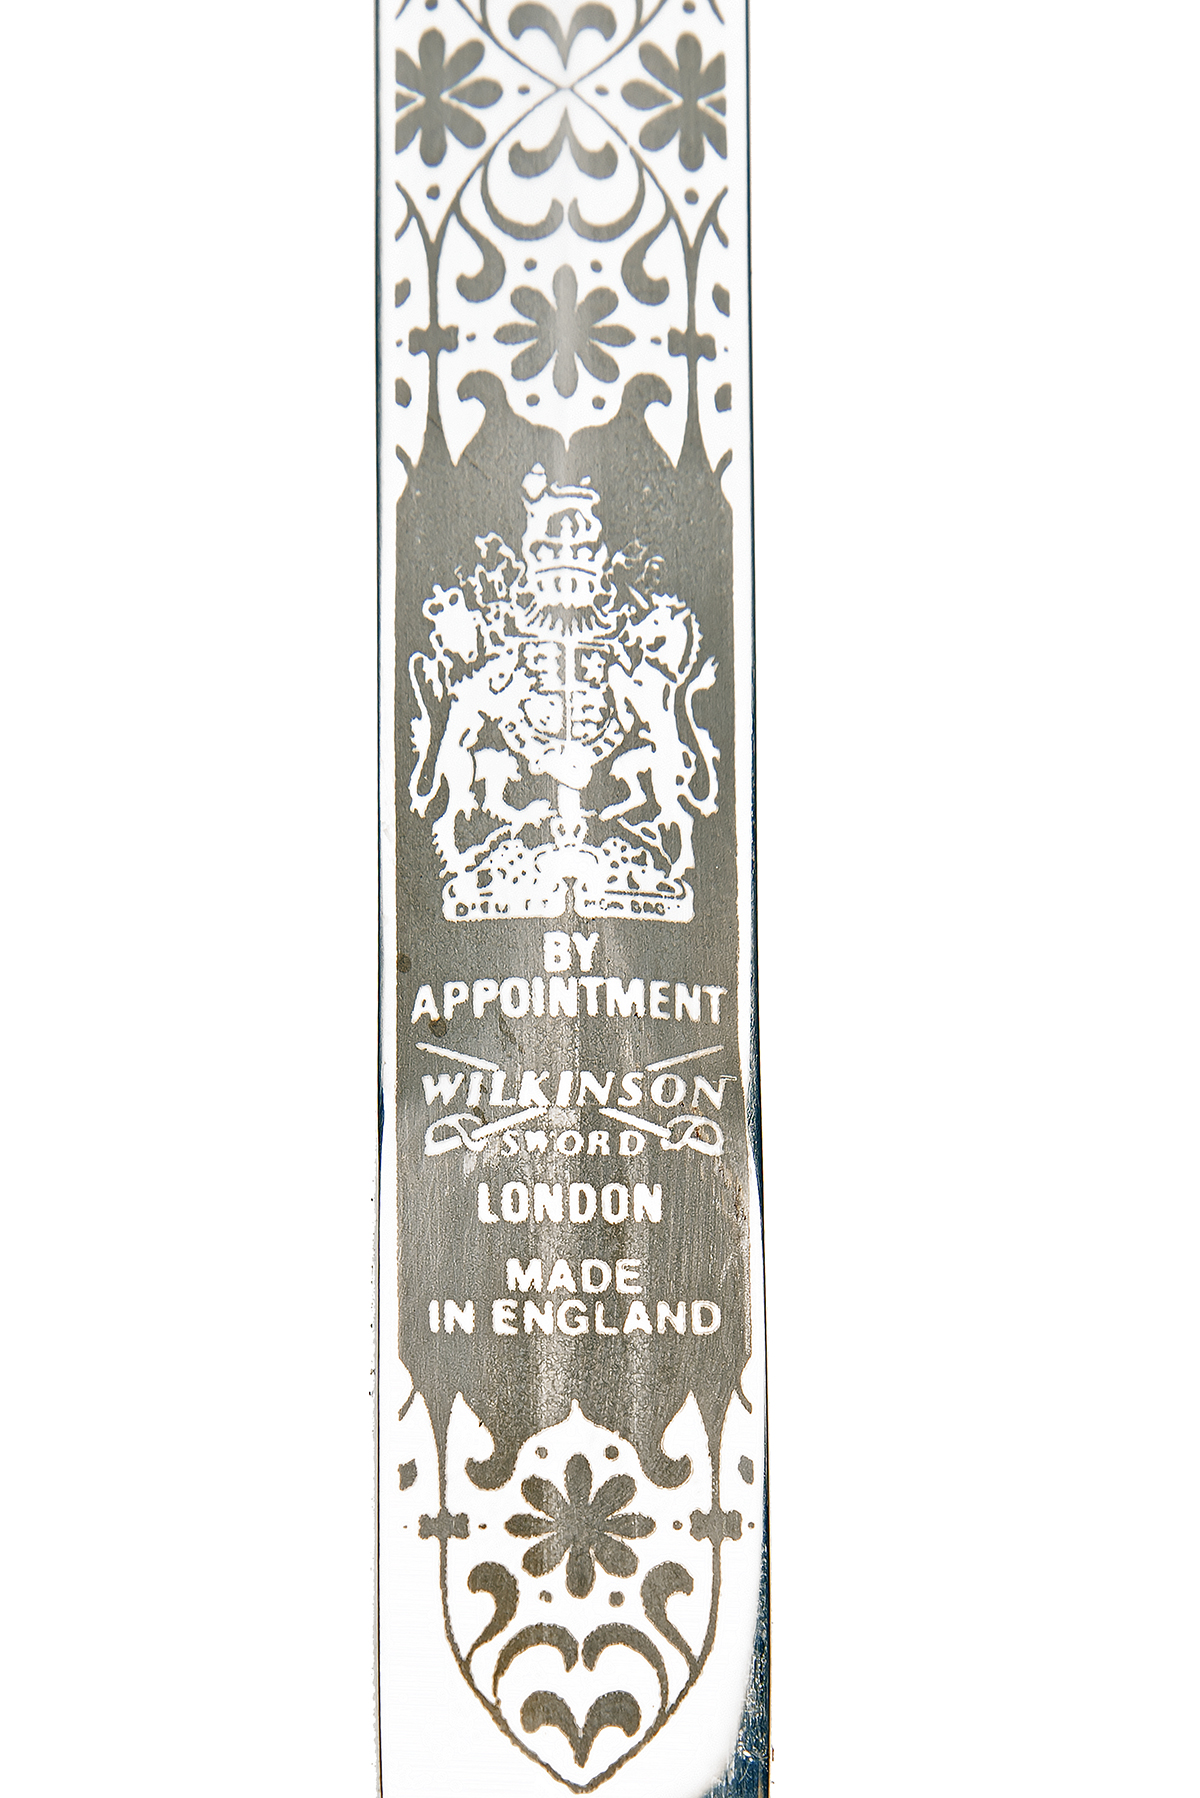 WILKINSON SWORD LTD, LONDON A CASED 200TH ANNIVERSARY PONIARD, no visible serial number, - Image 4 of 4